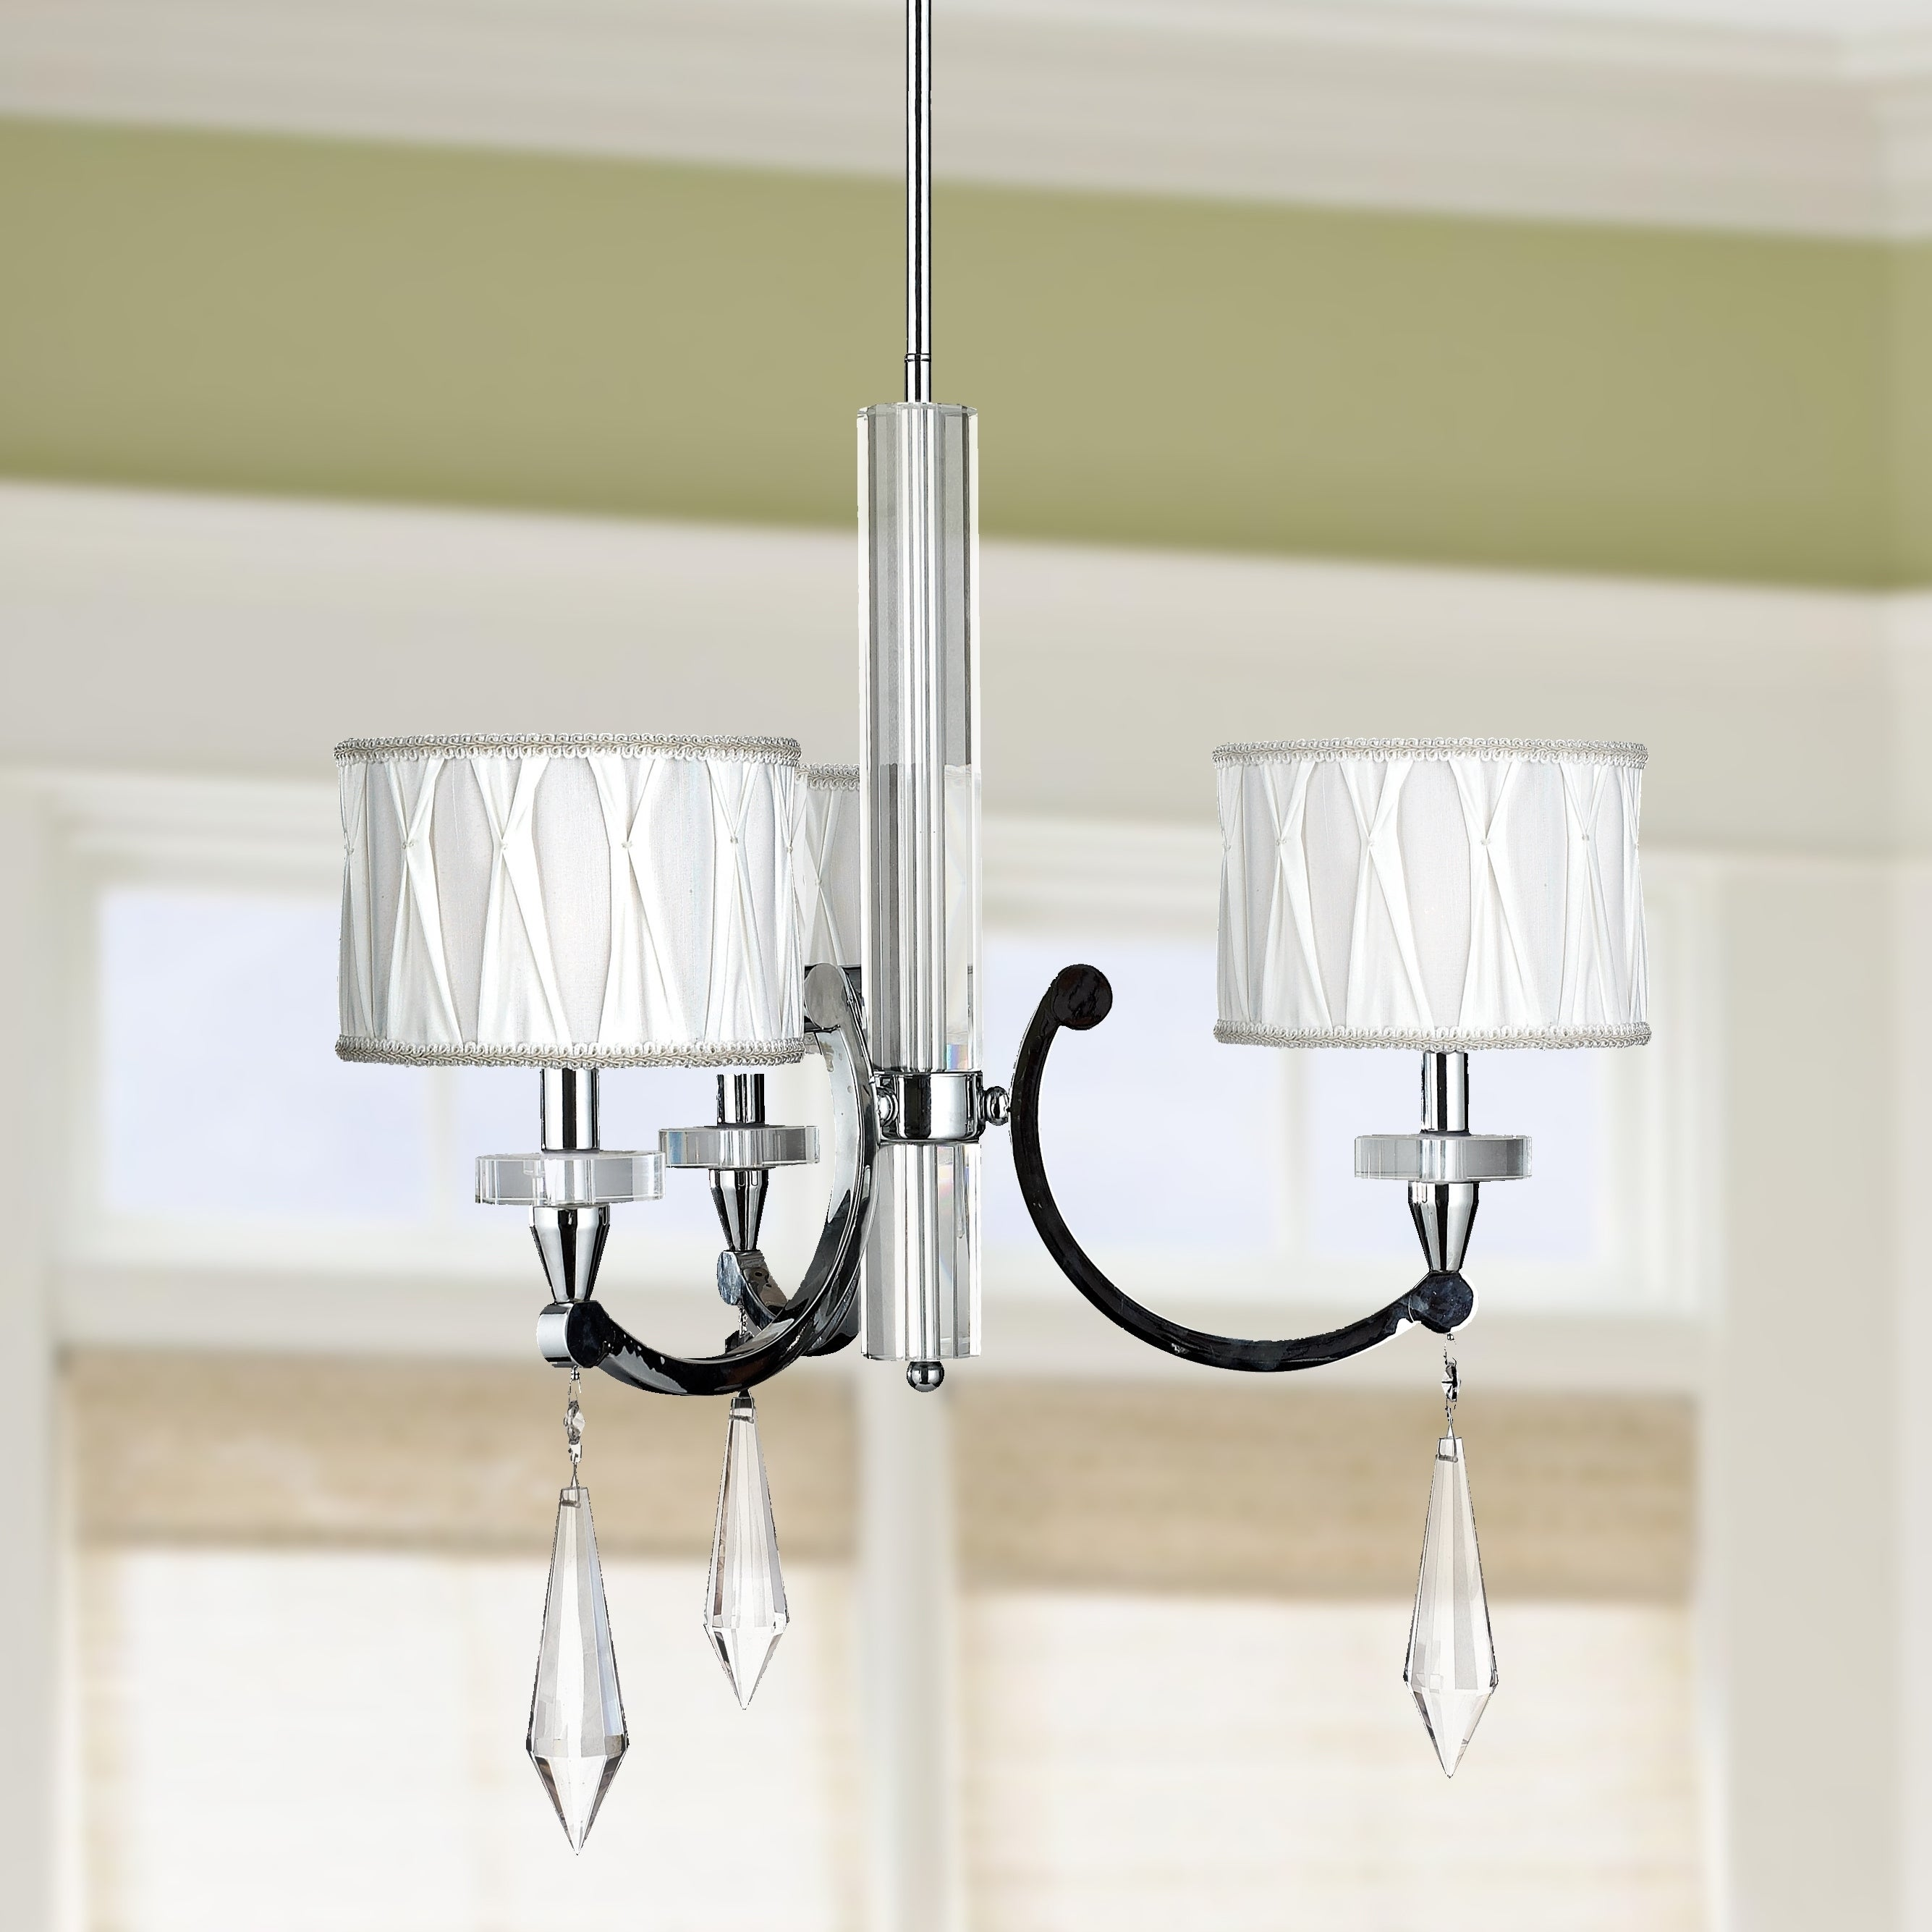 Cutl 3 Light Arm Crystal Chandelier With White Fabric Drum Shade 25 X26